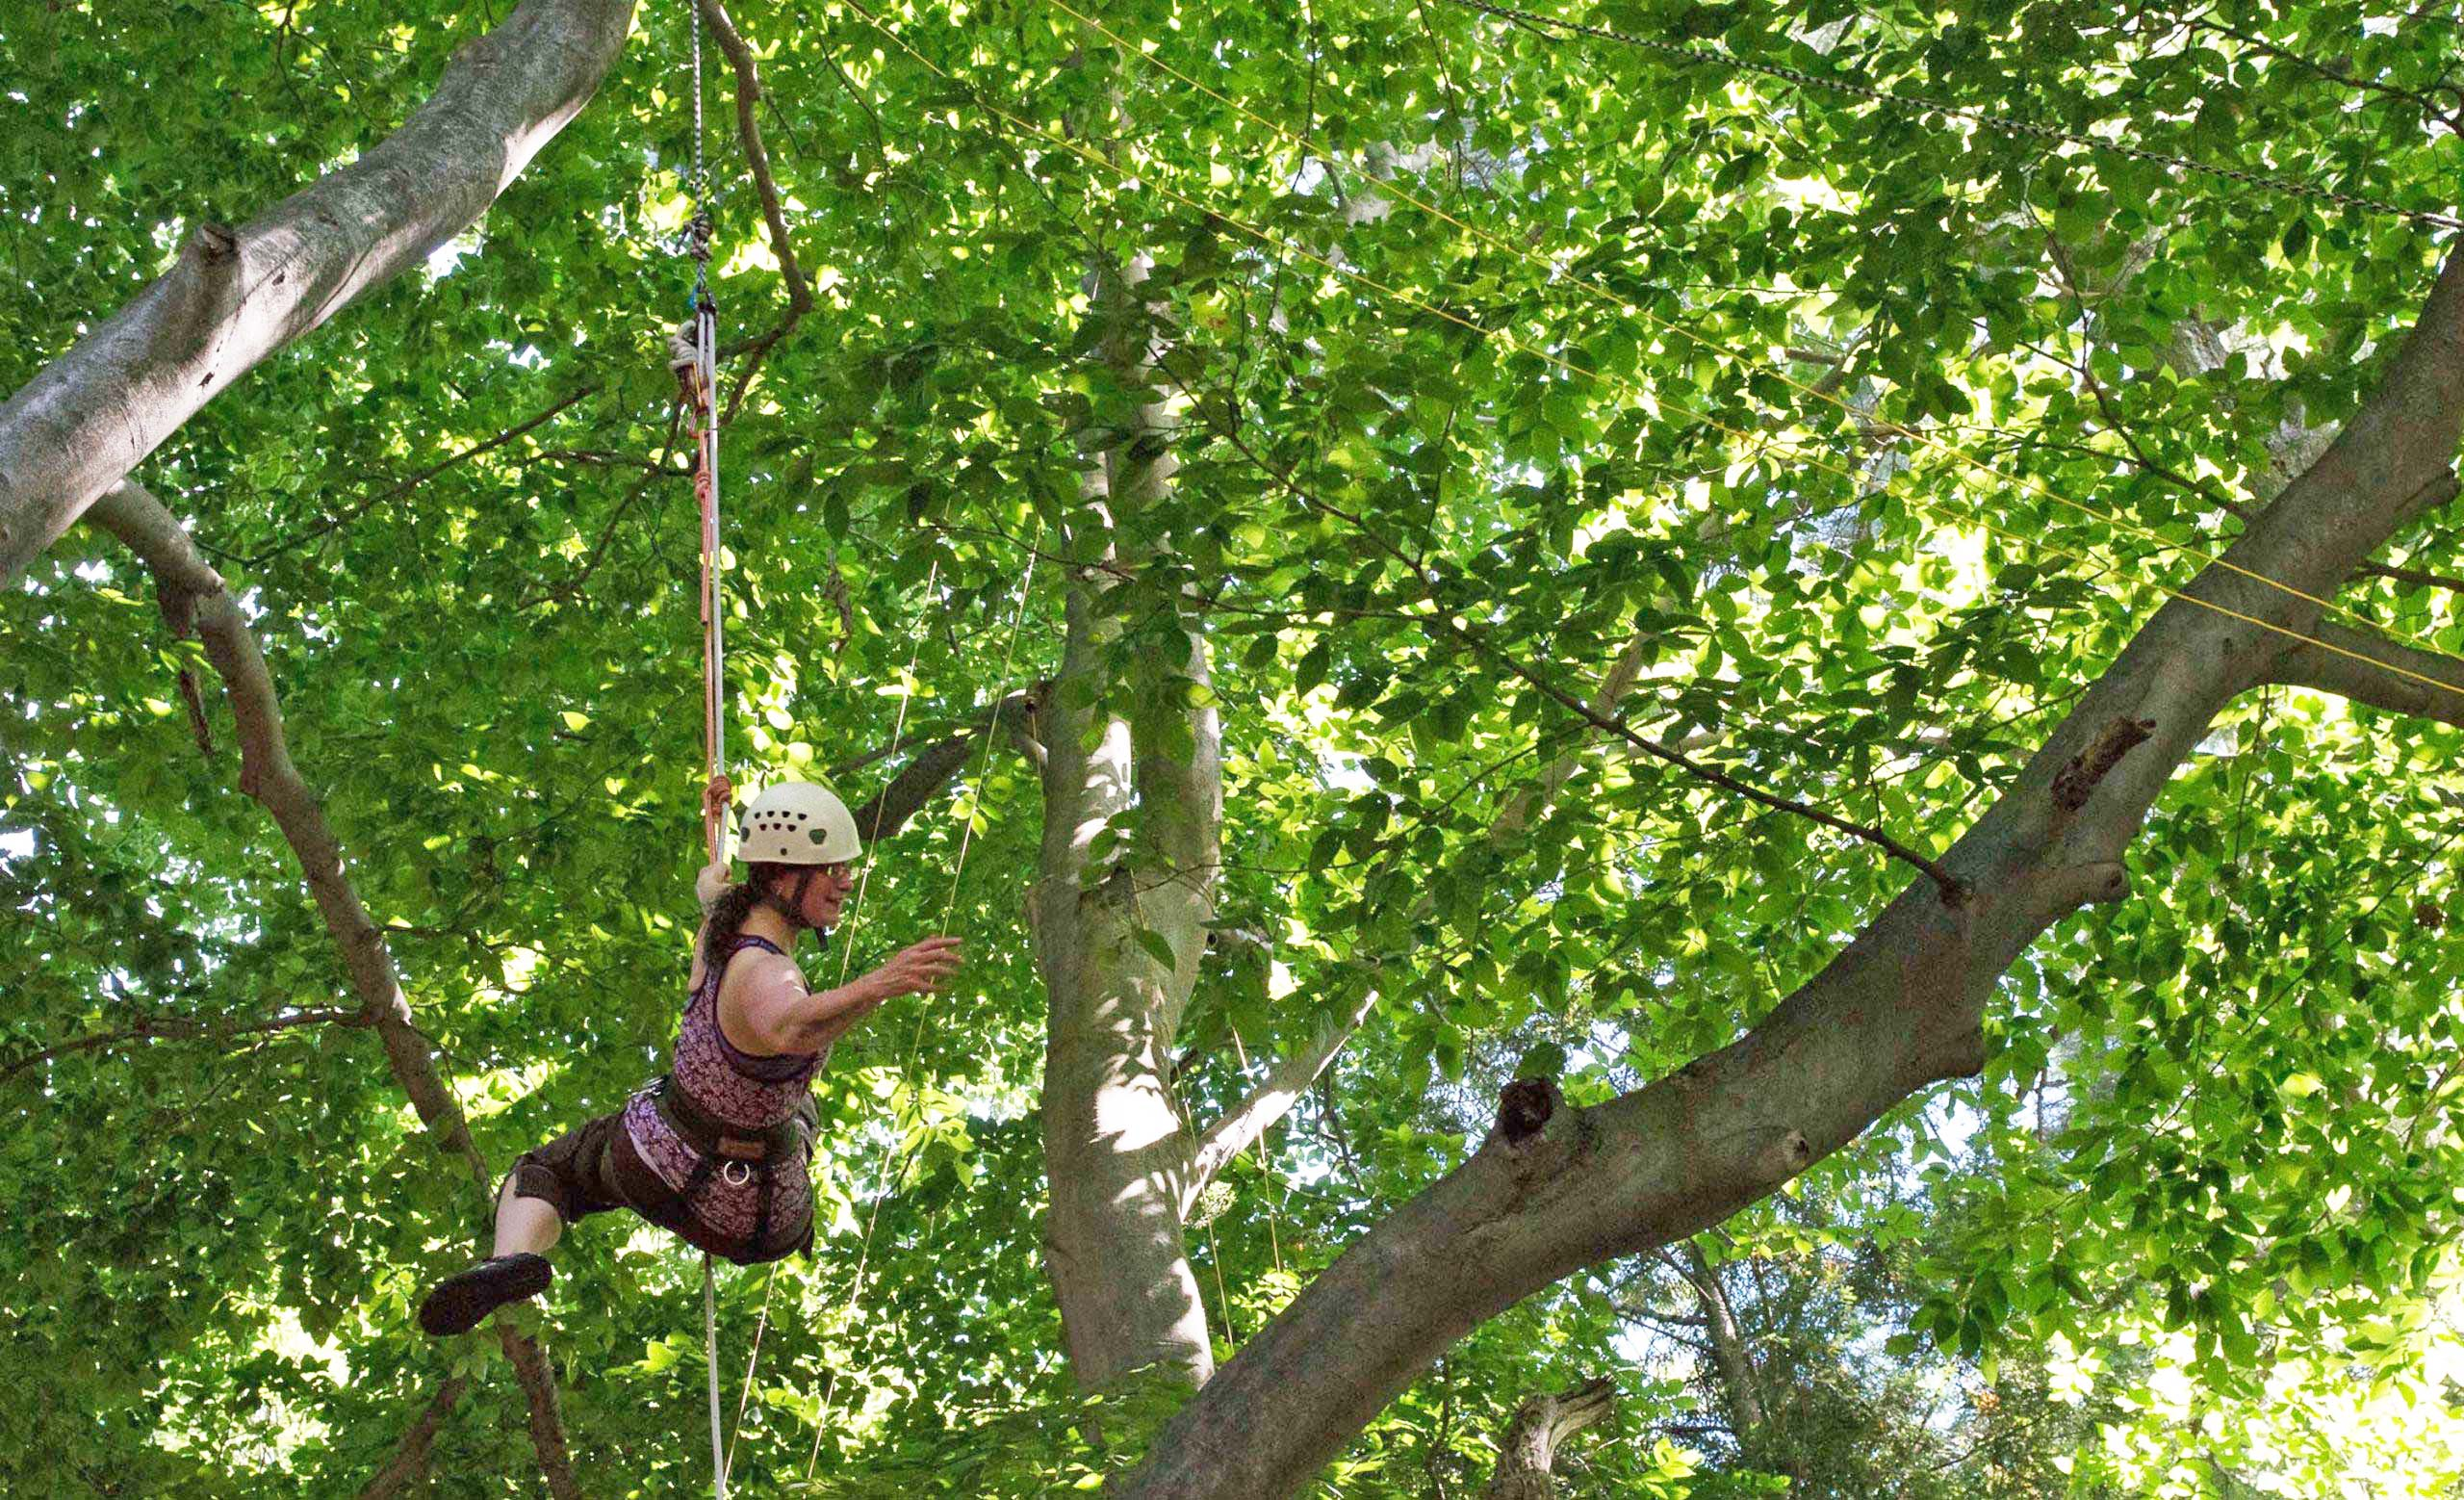 A camper climbing trees with ropes